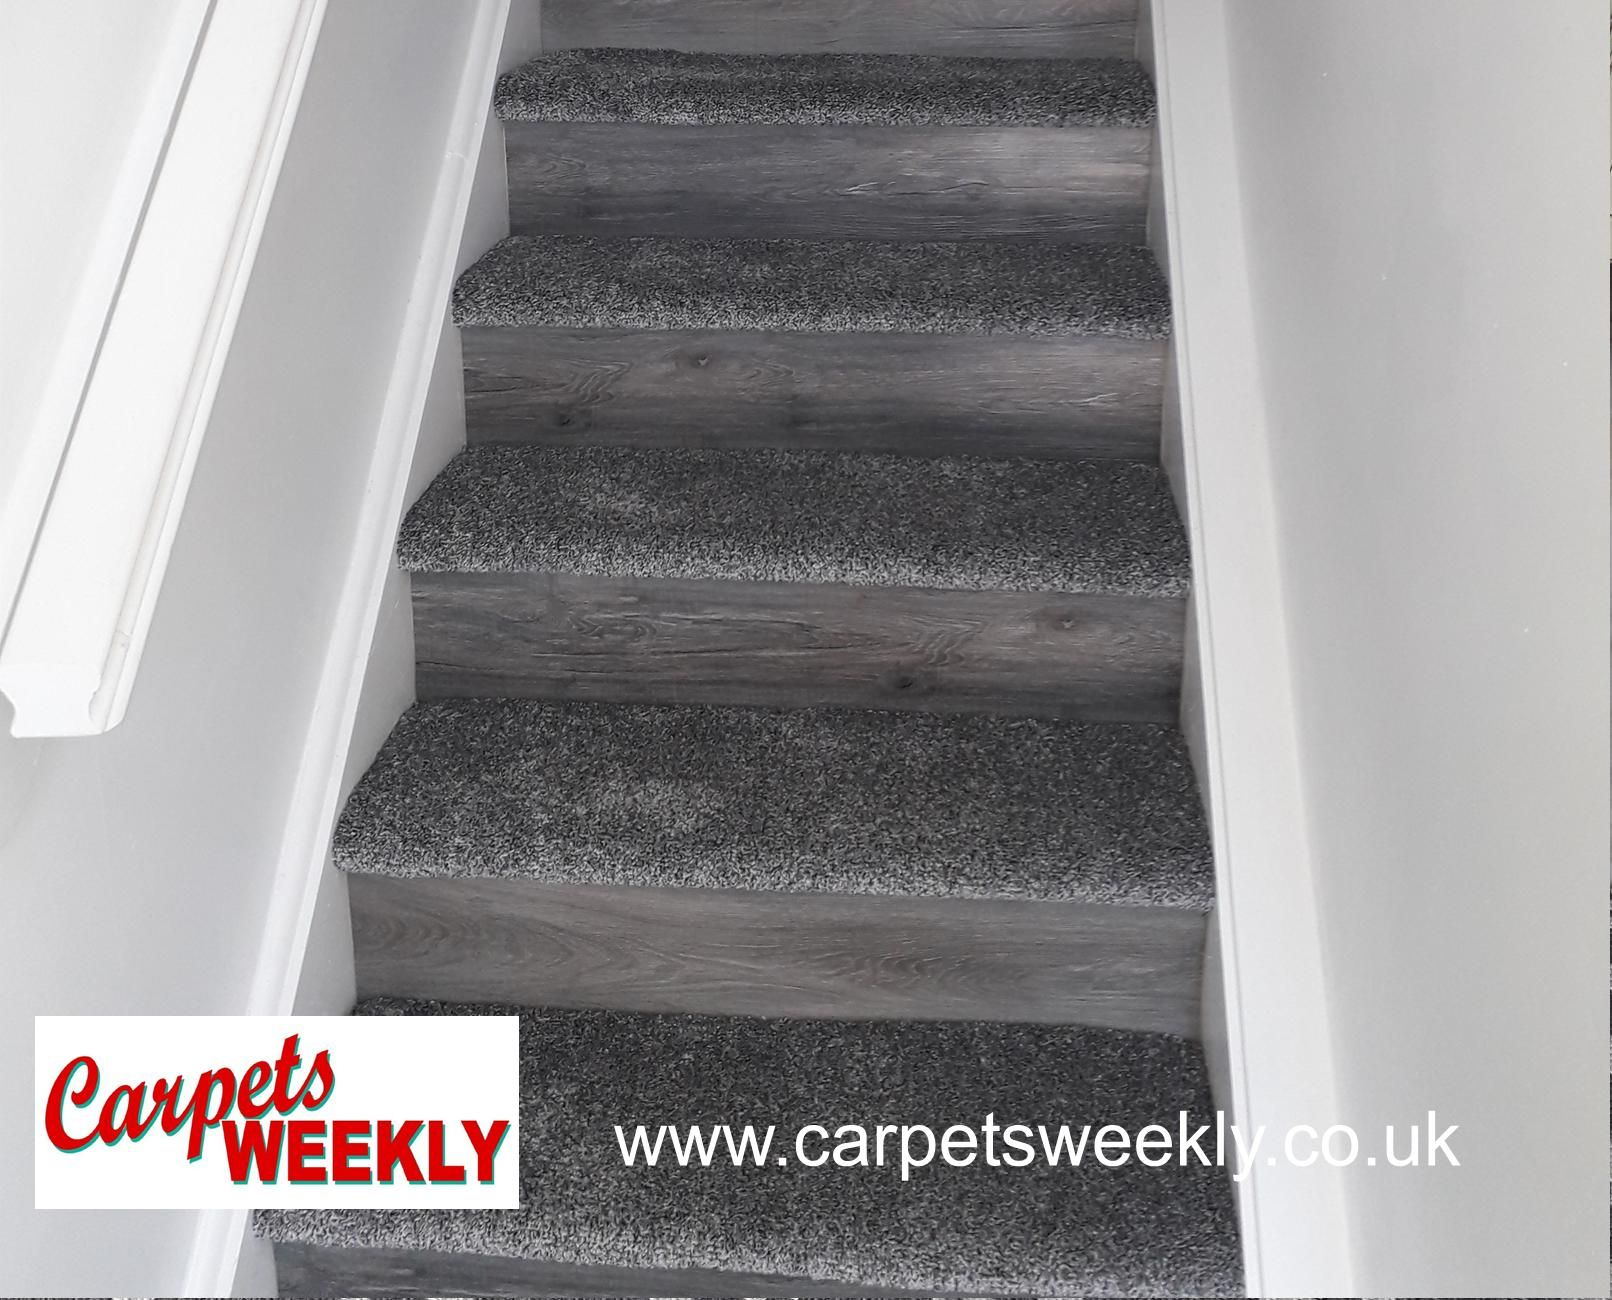 Carpets Weekly Combi Stairs with Apollo Silver Grey and NEW LVT facings